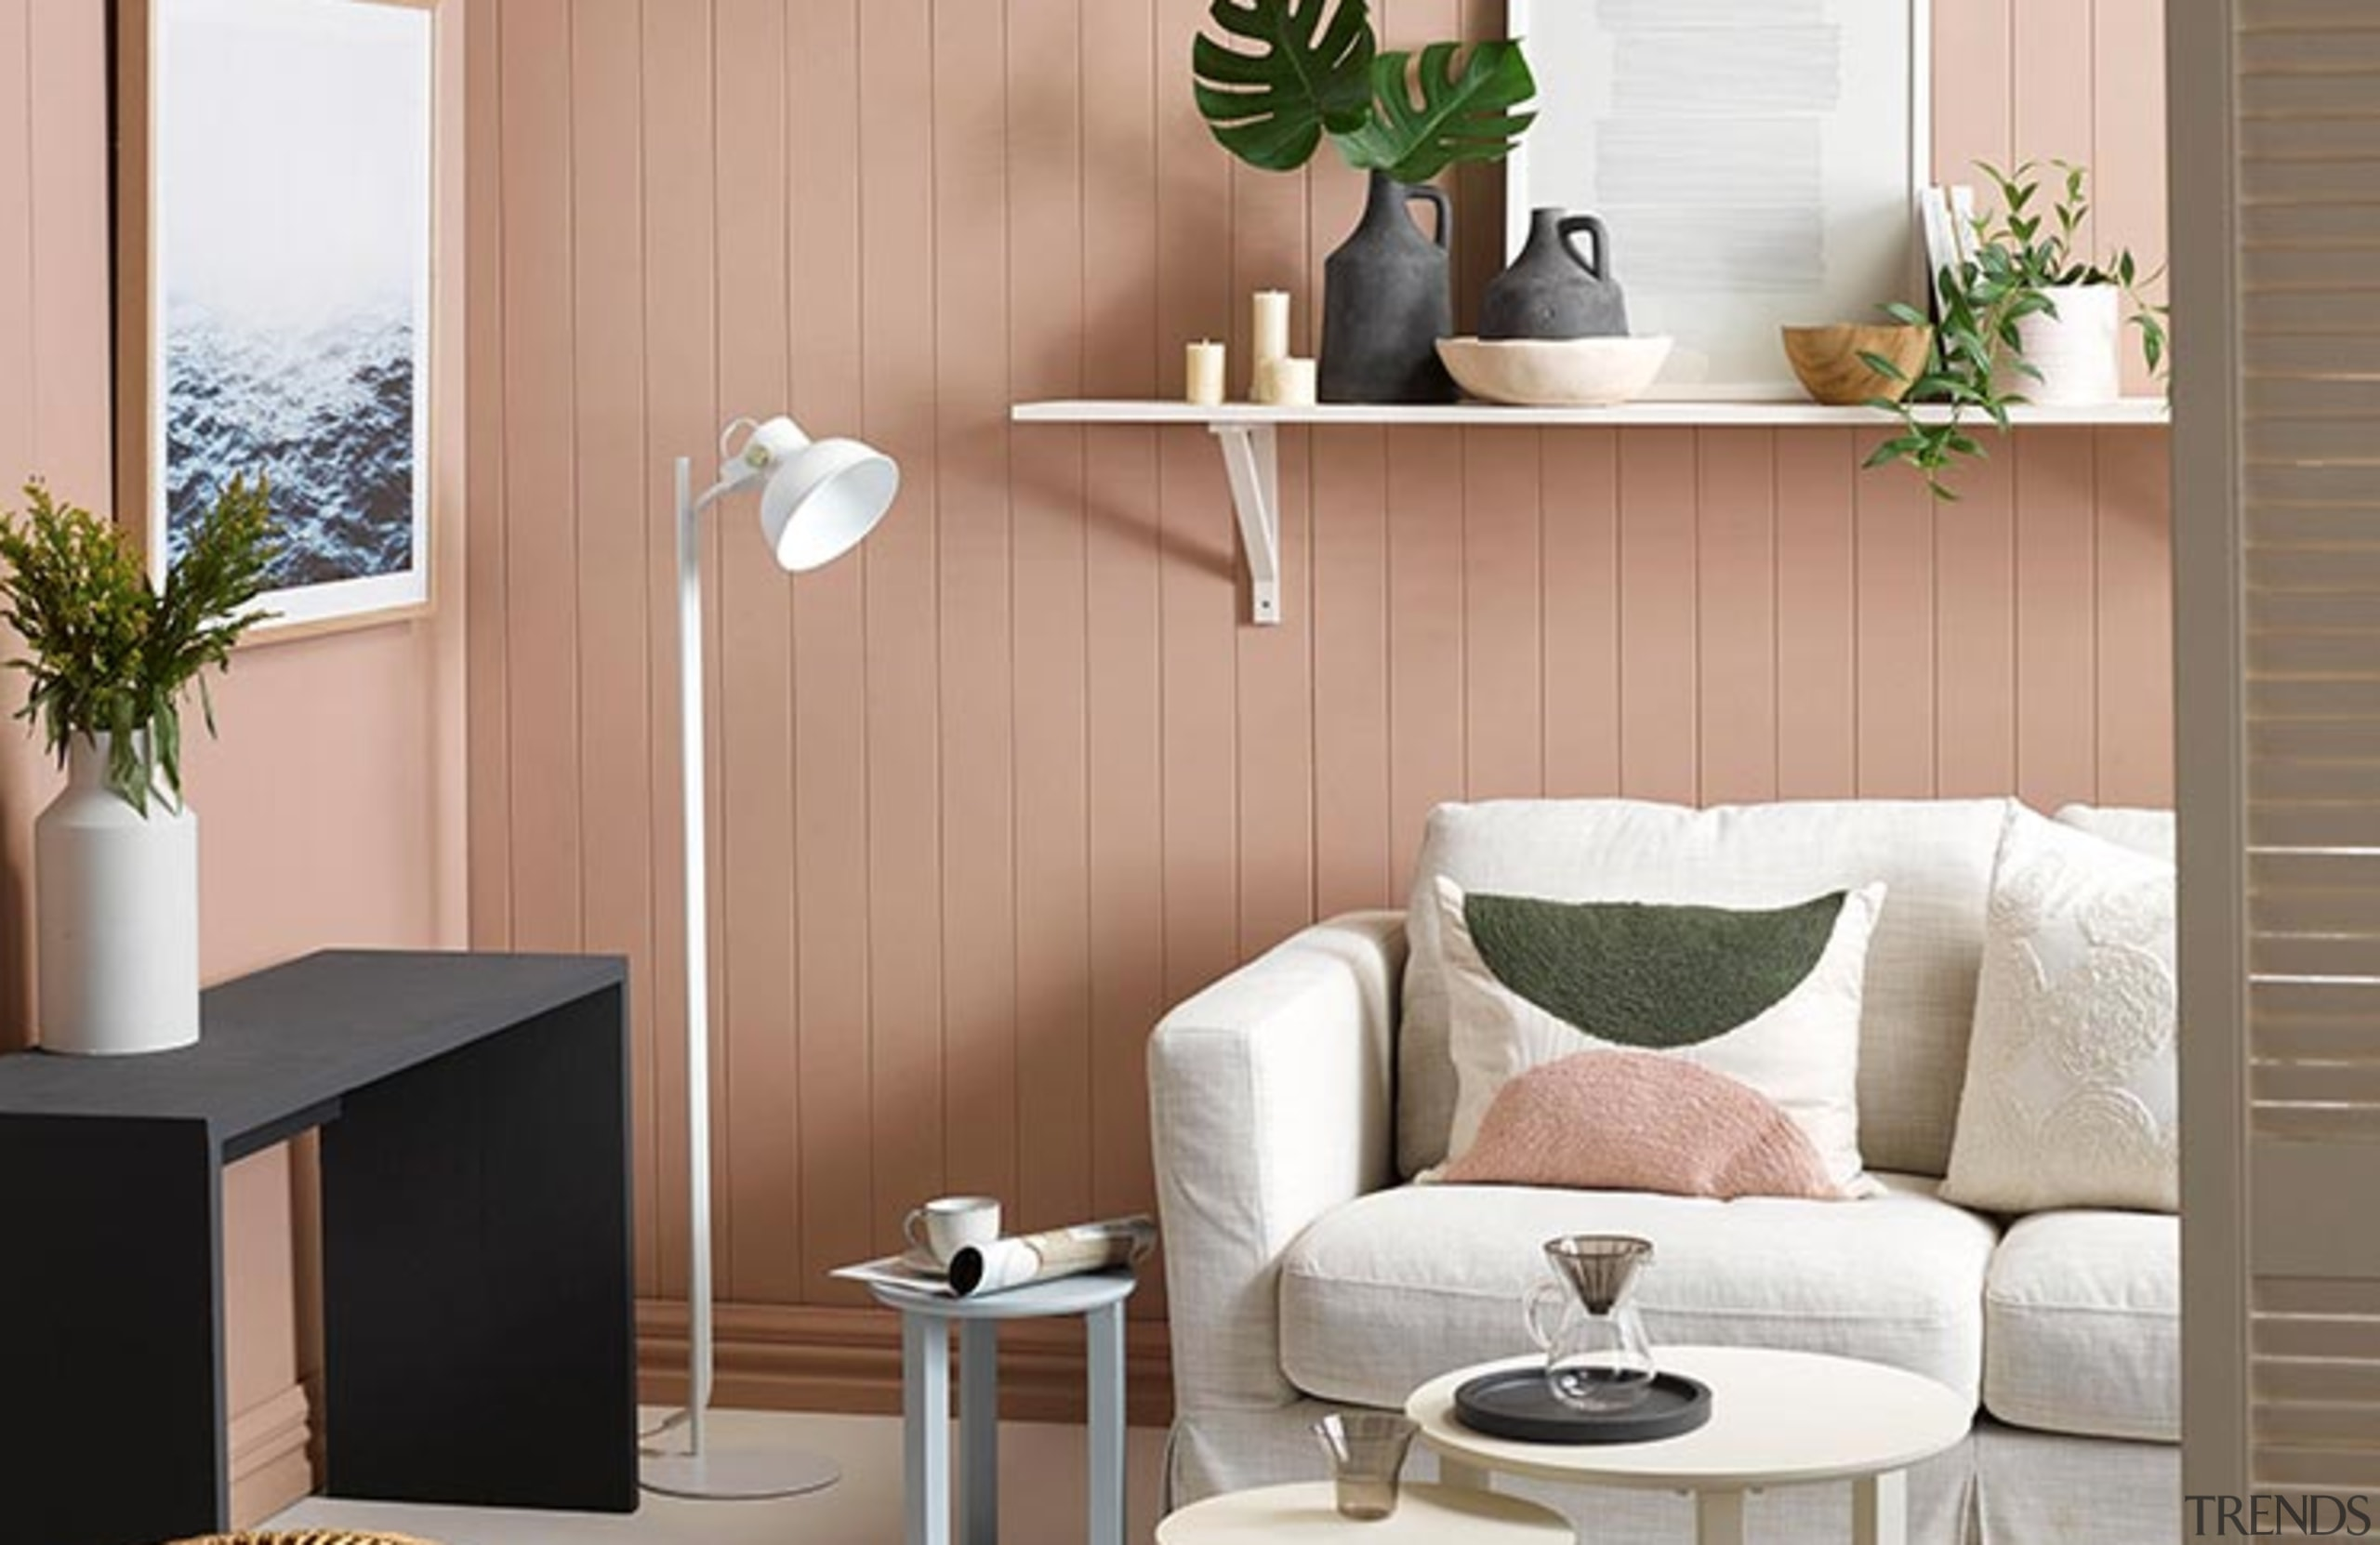 Interior design trends 2019 – what's in and coffee table, floor, furniture, houseplant, interior design, living room, plant, product, room, shelf, table, wall, white, orange